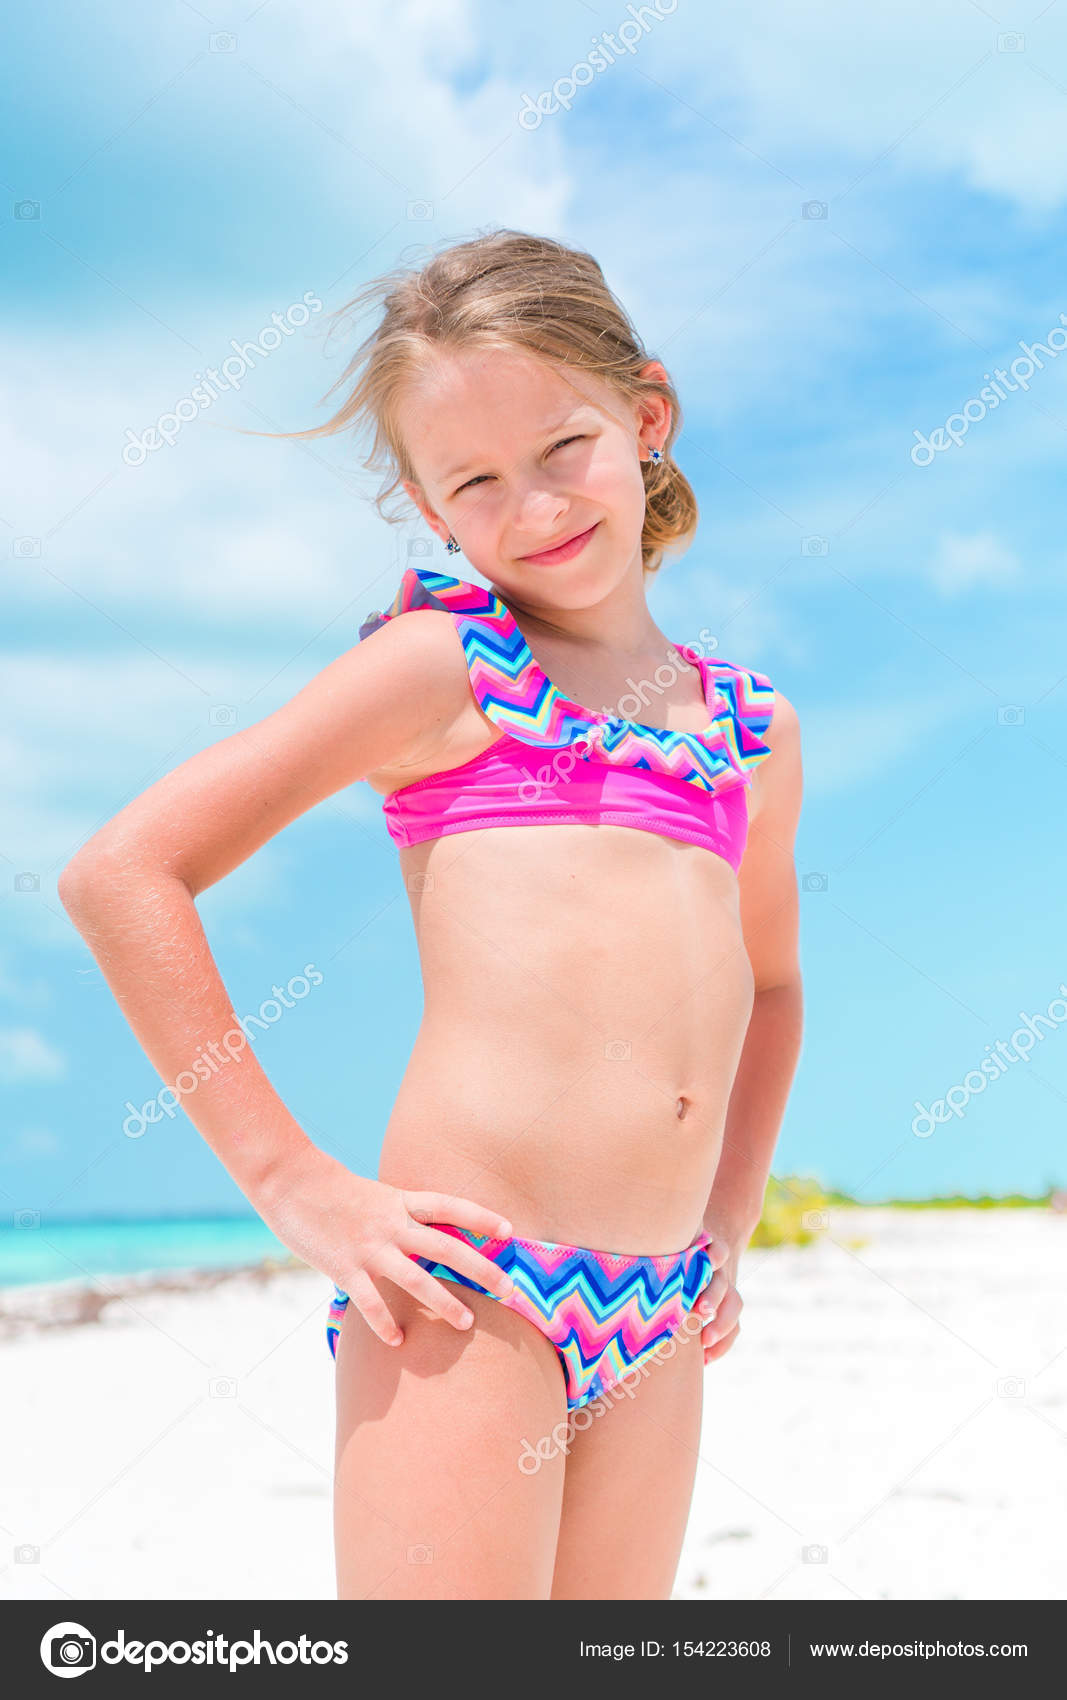 d5463e463538a Portrait of adorable little girl at beach during summer vacation ...